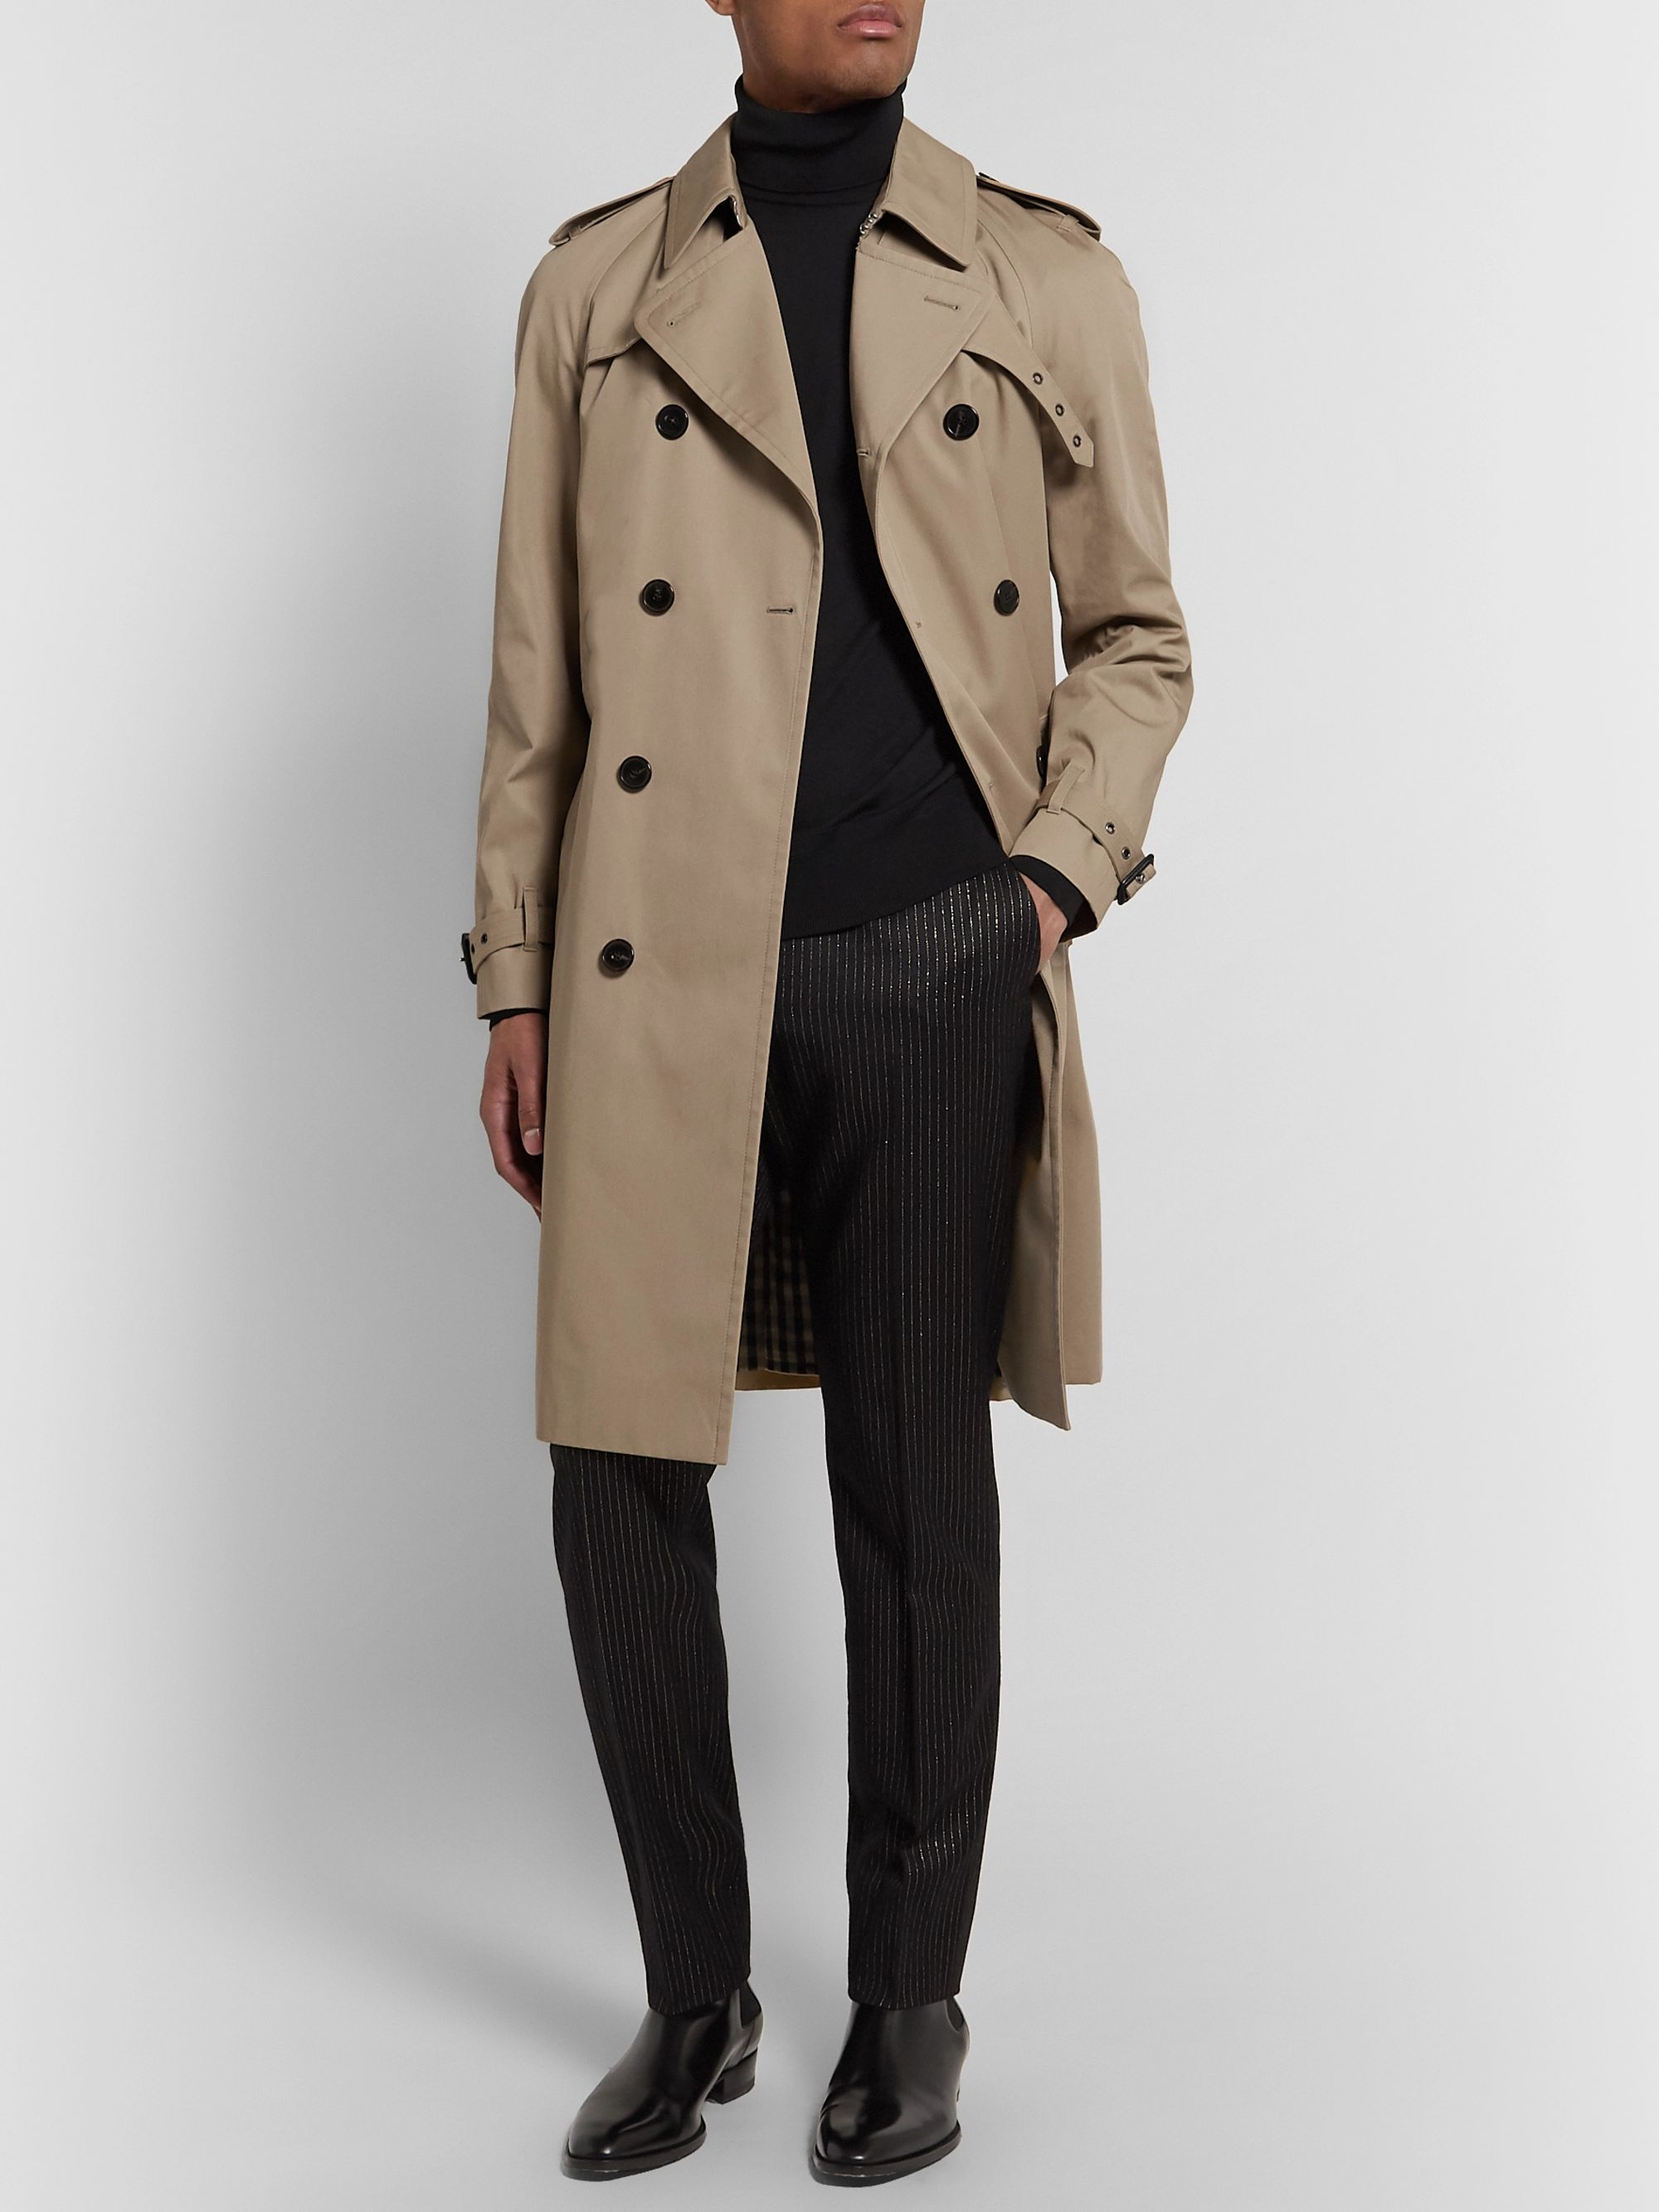 SAINT LAURENT Leather-Trimmed Gabardine Trench Coat